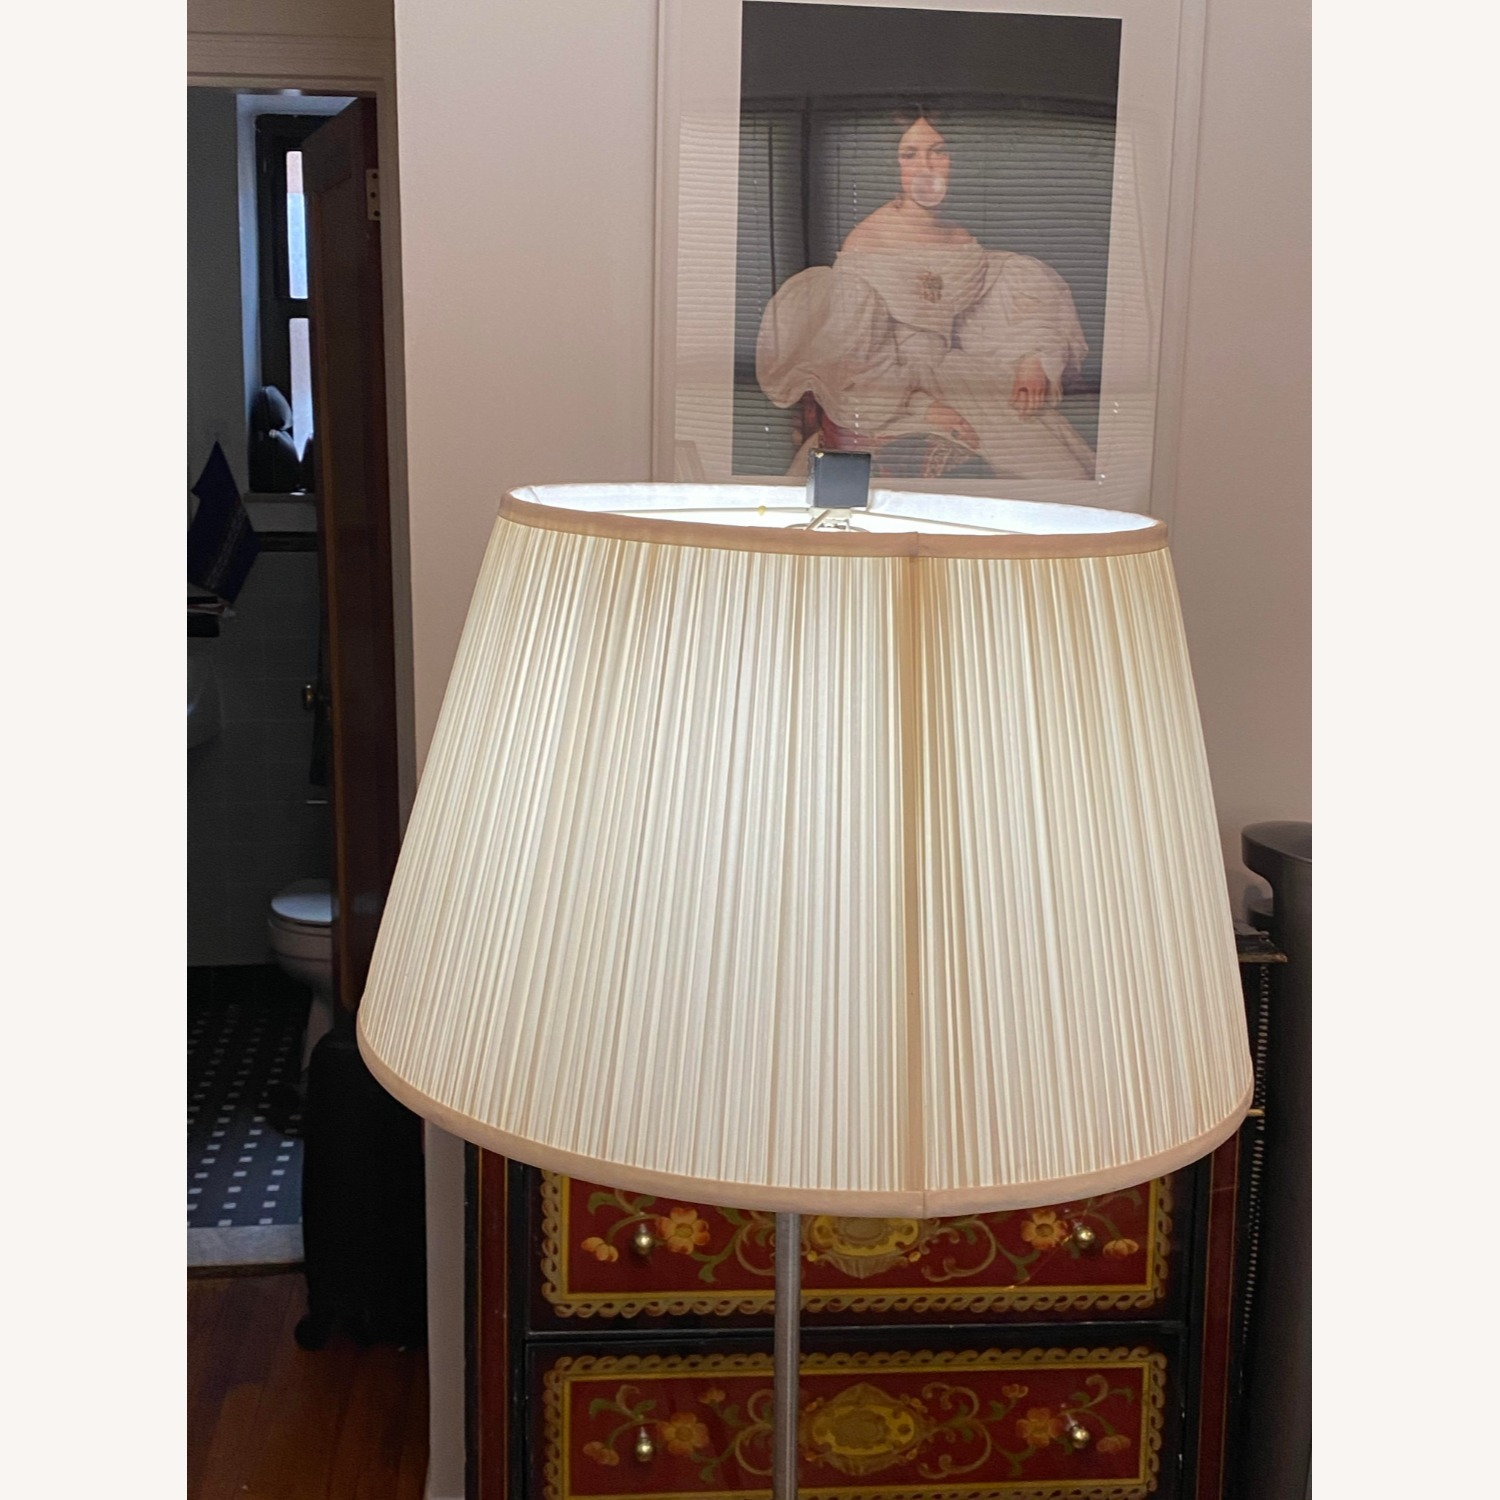 Glass Tray Table Floor Lamp w/ Drum Shade - image-2